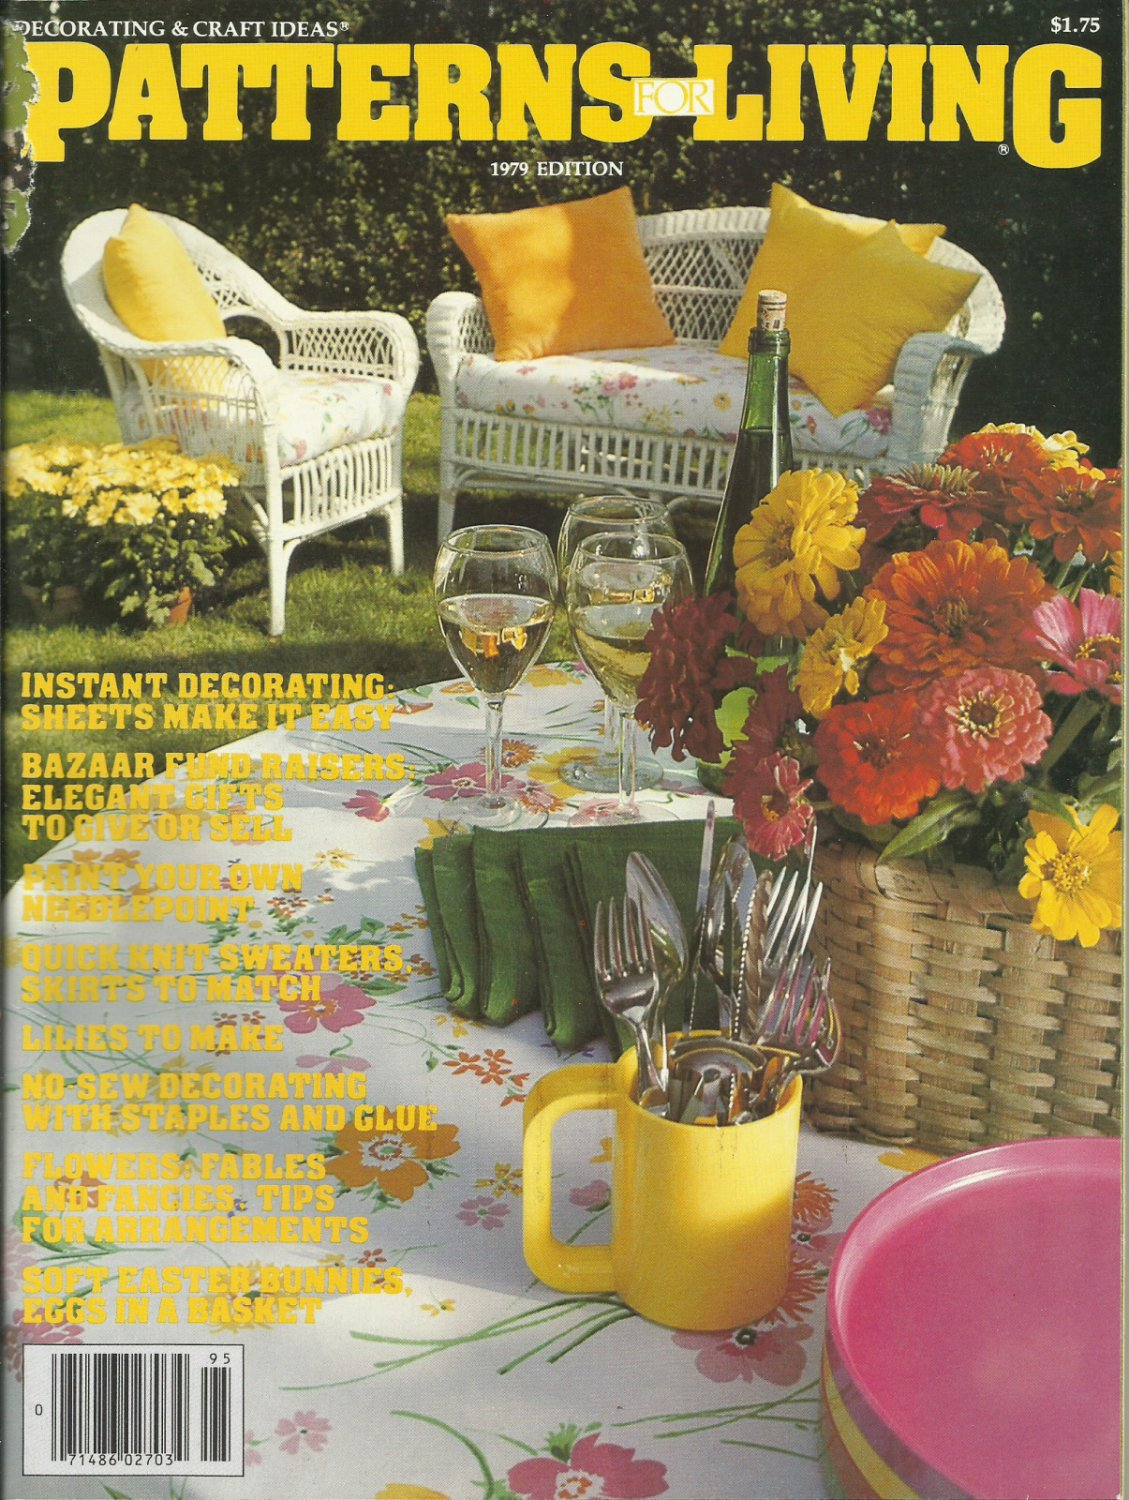 Decorating & Craft Ideas- Patterns for Living 1979 edition